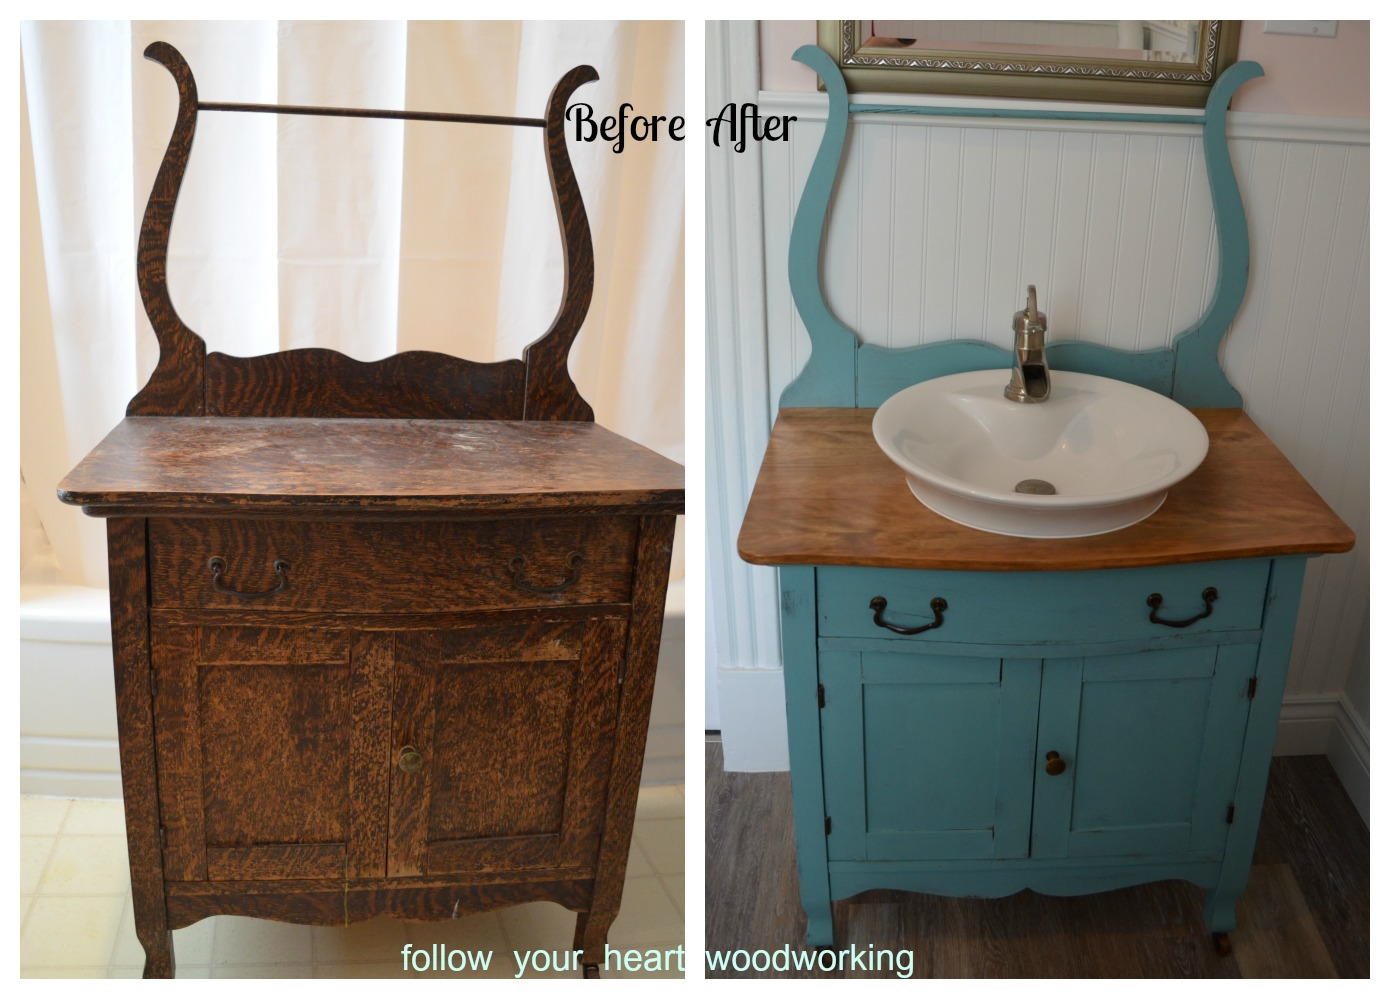 follow your heart woodworking bathroom renovation part 5 the commode turned into a vanity. Black Bedroom Furniture Sets. Home Design Ideas